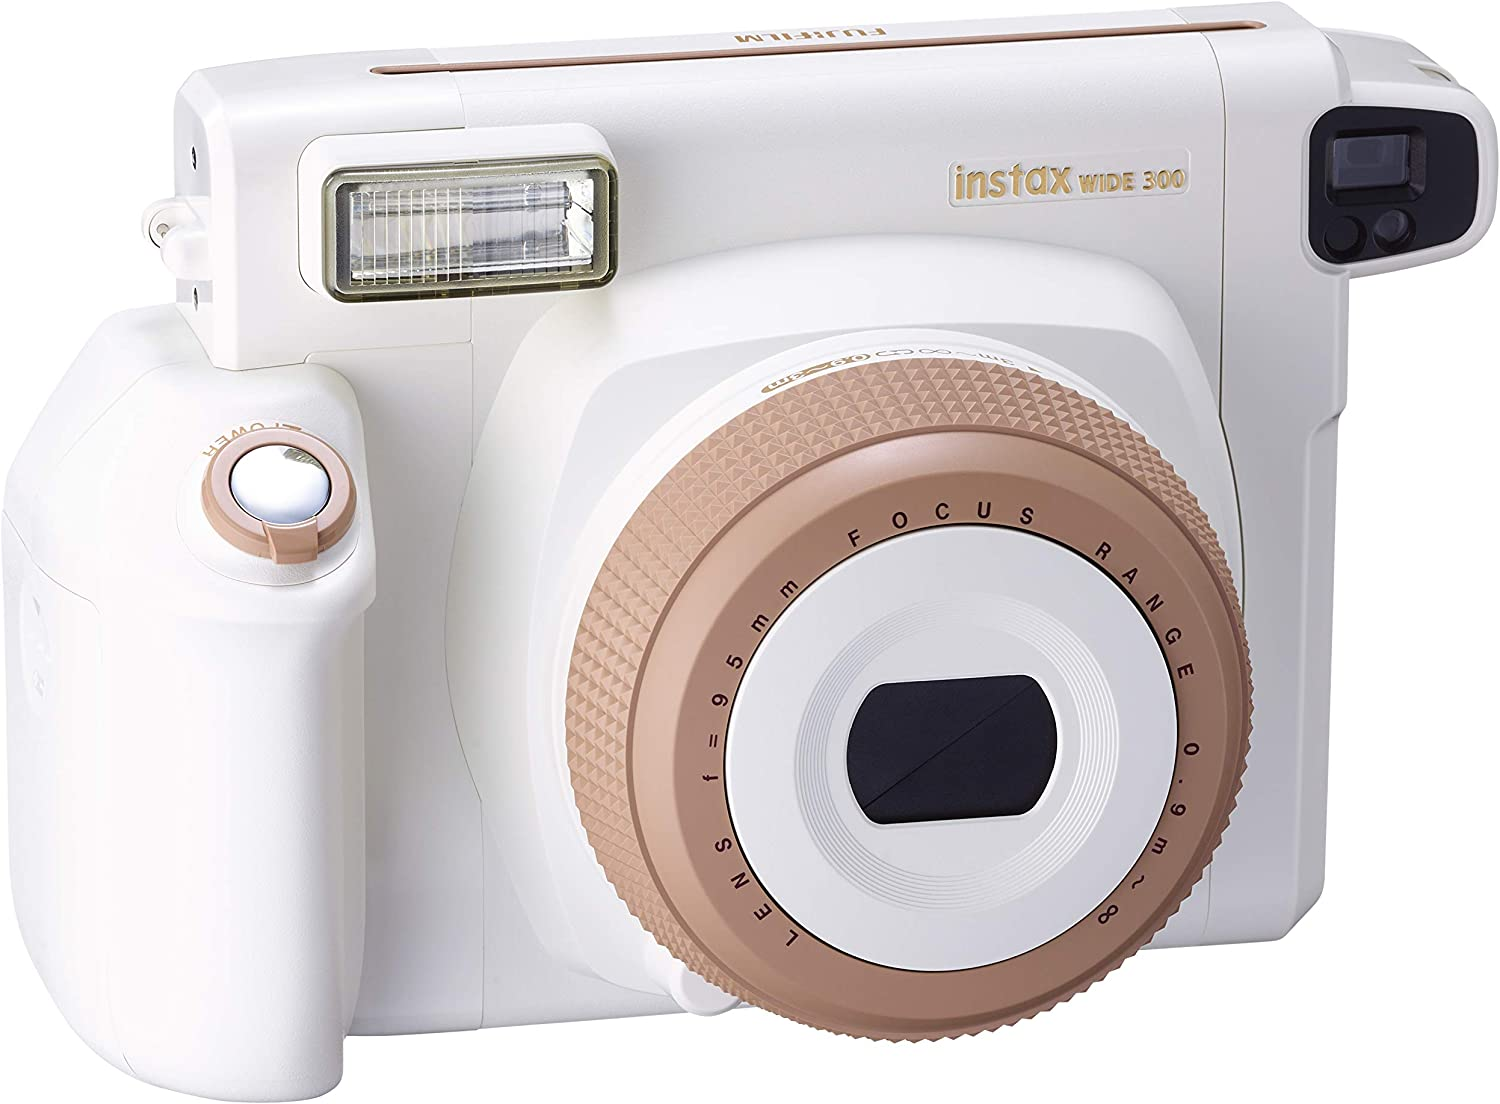 instax WIDE 300 camera /& Fujifilm Instax 100 Wide-Angle Photos Set of 5 Boxes of 20 Film Reels for Fuji Instax 210 WIDEX5